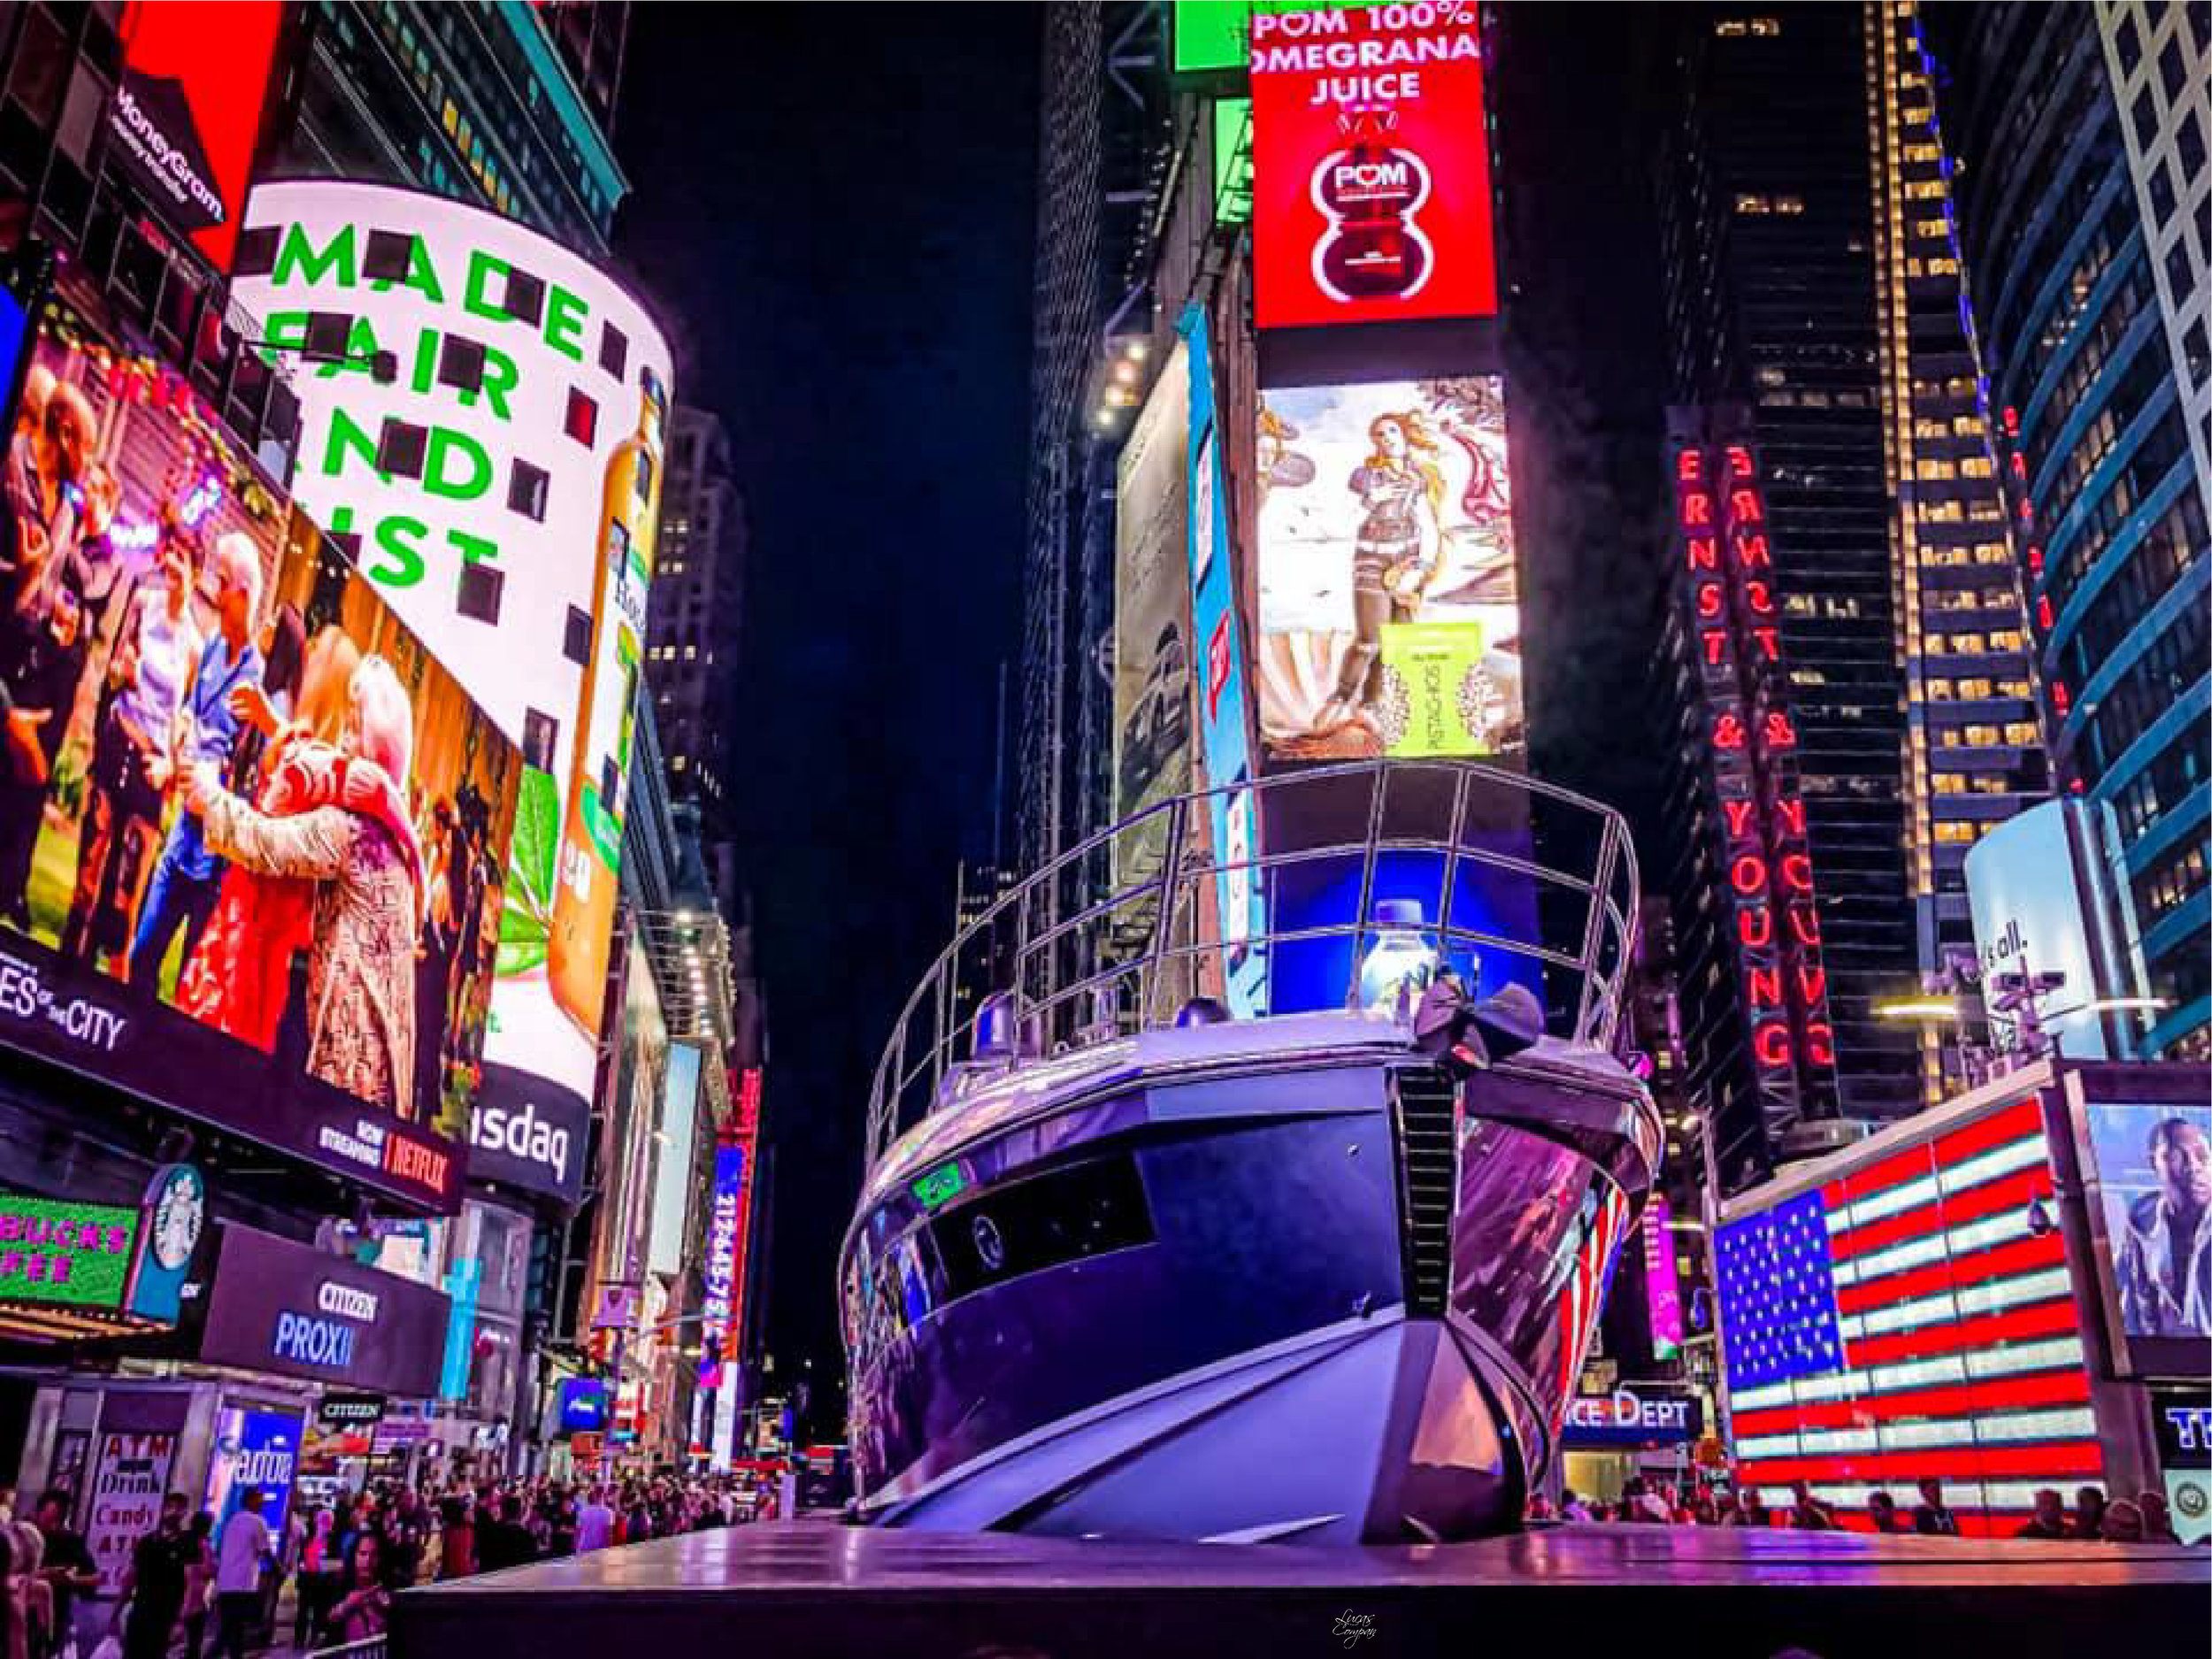 azimut yachts   an azimut s6 yacht landed in times square, new york city